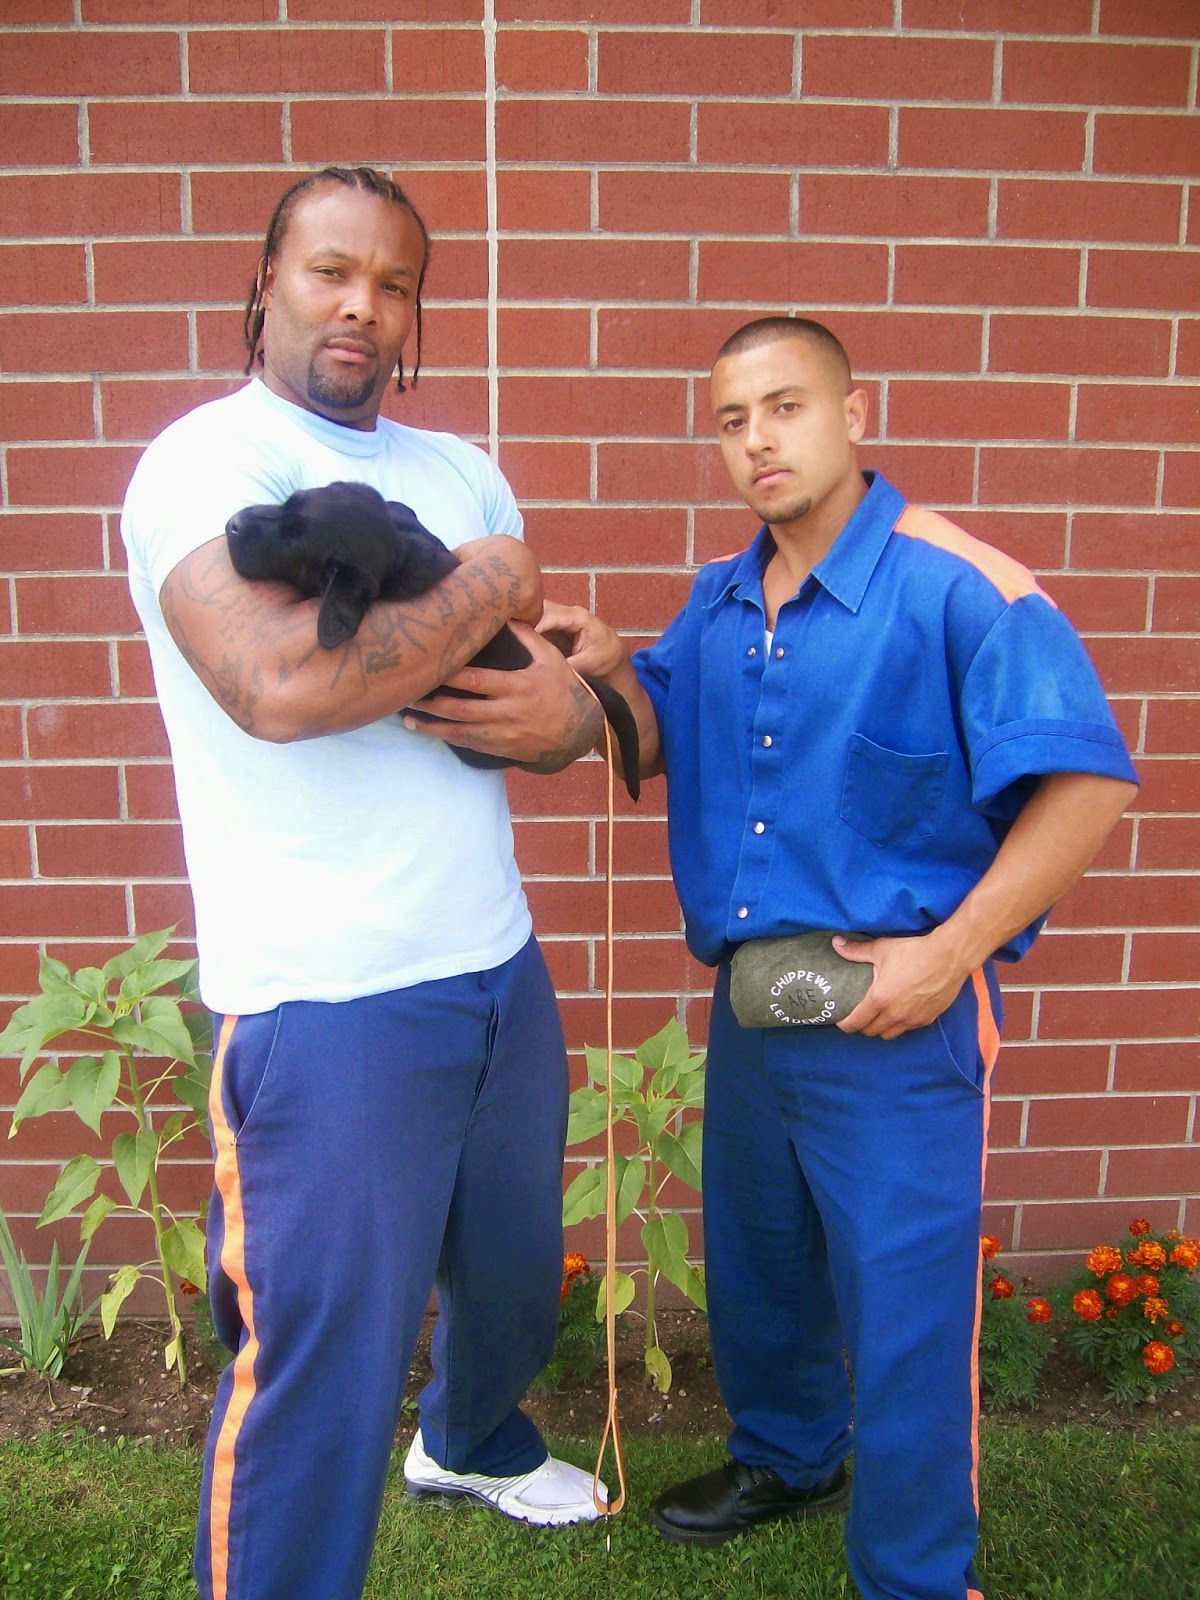 Two  men stand in front of a brick wall, the african american man on the left is wearing blue prison pants and a white t-shirt, he is holding a small black lab puppy in his arms. The man on the right is wearing the blue prison uniforms. They have serious looks on their faces.